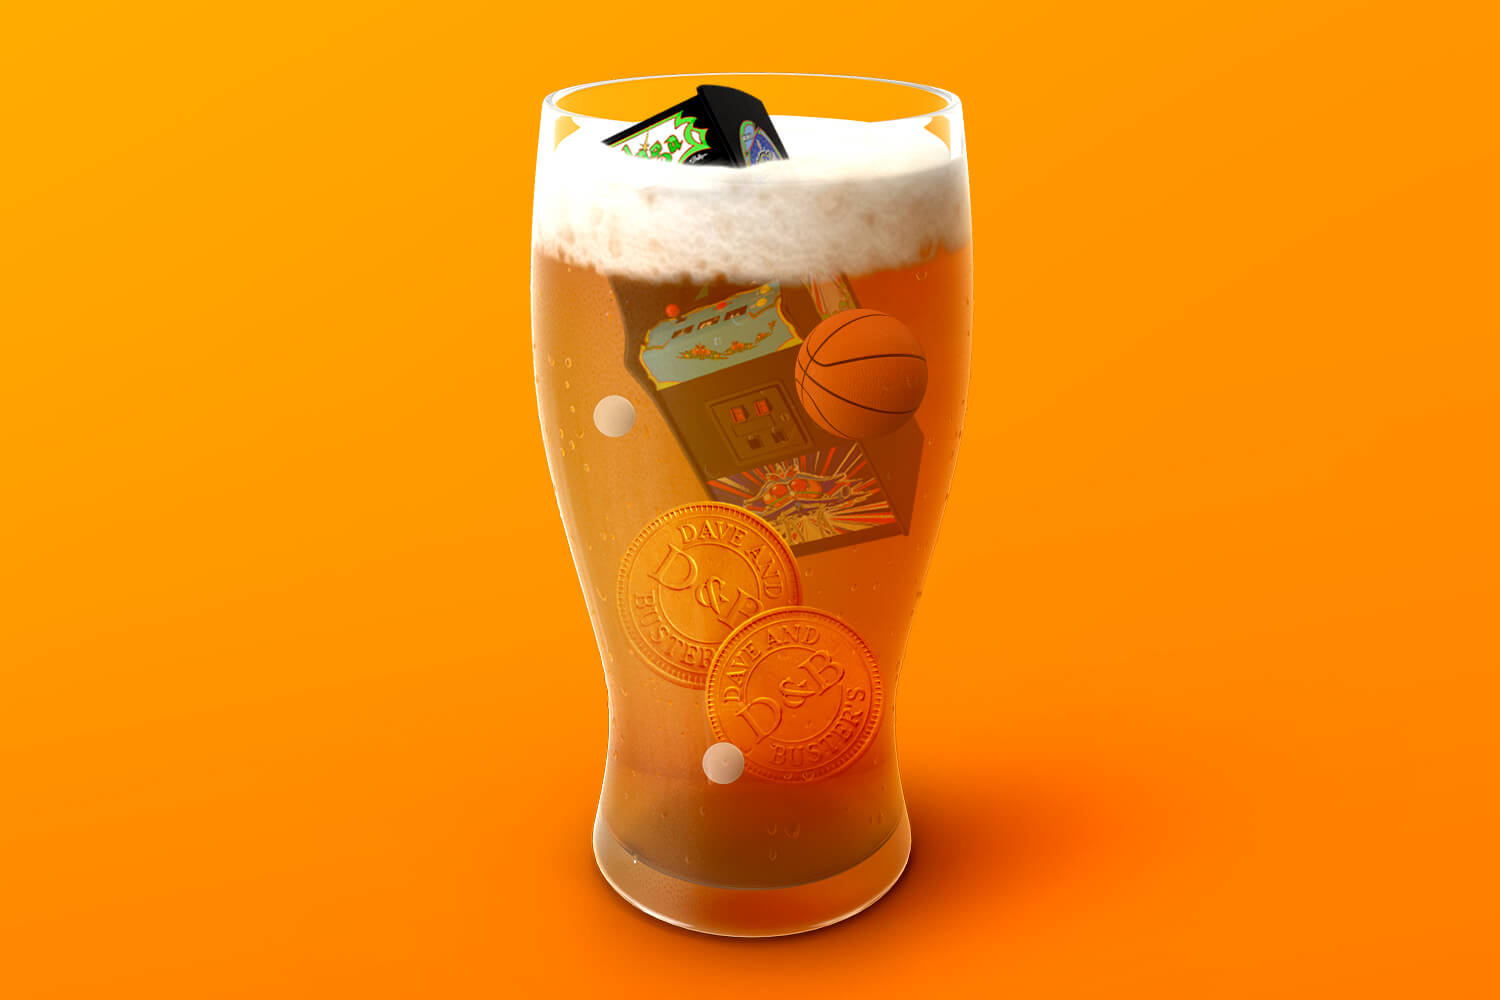 A beer glass filled with Dave & Buster's icons